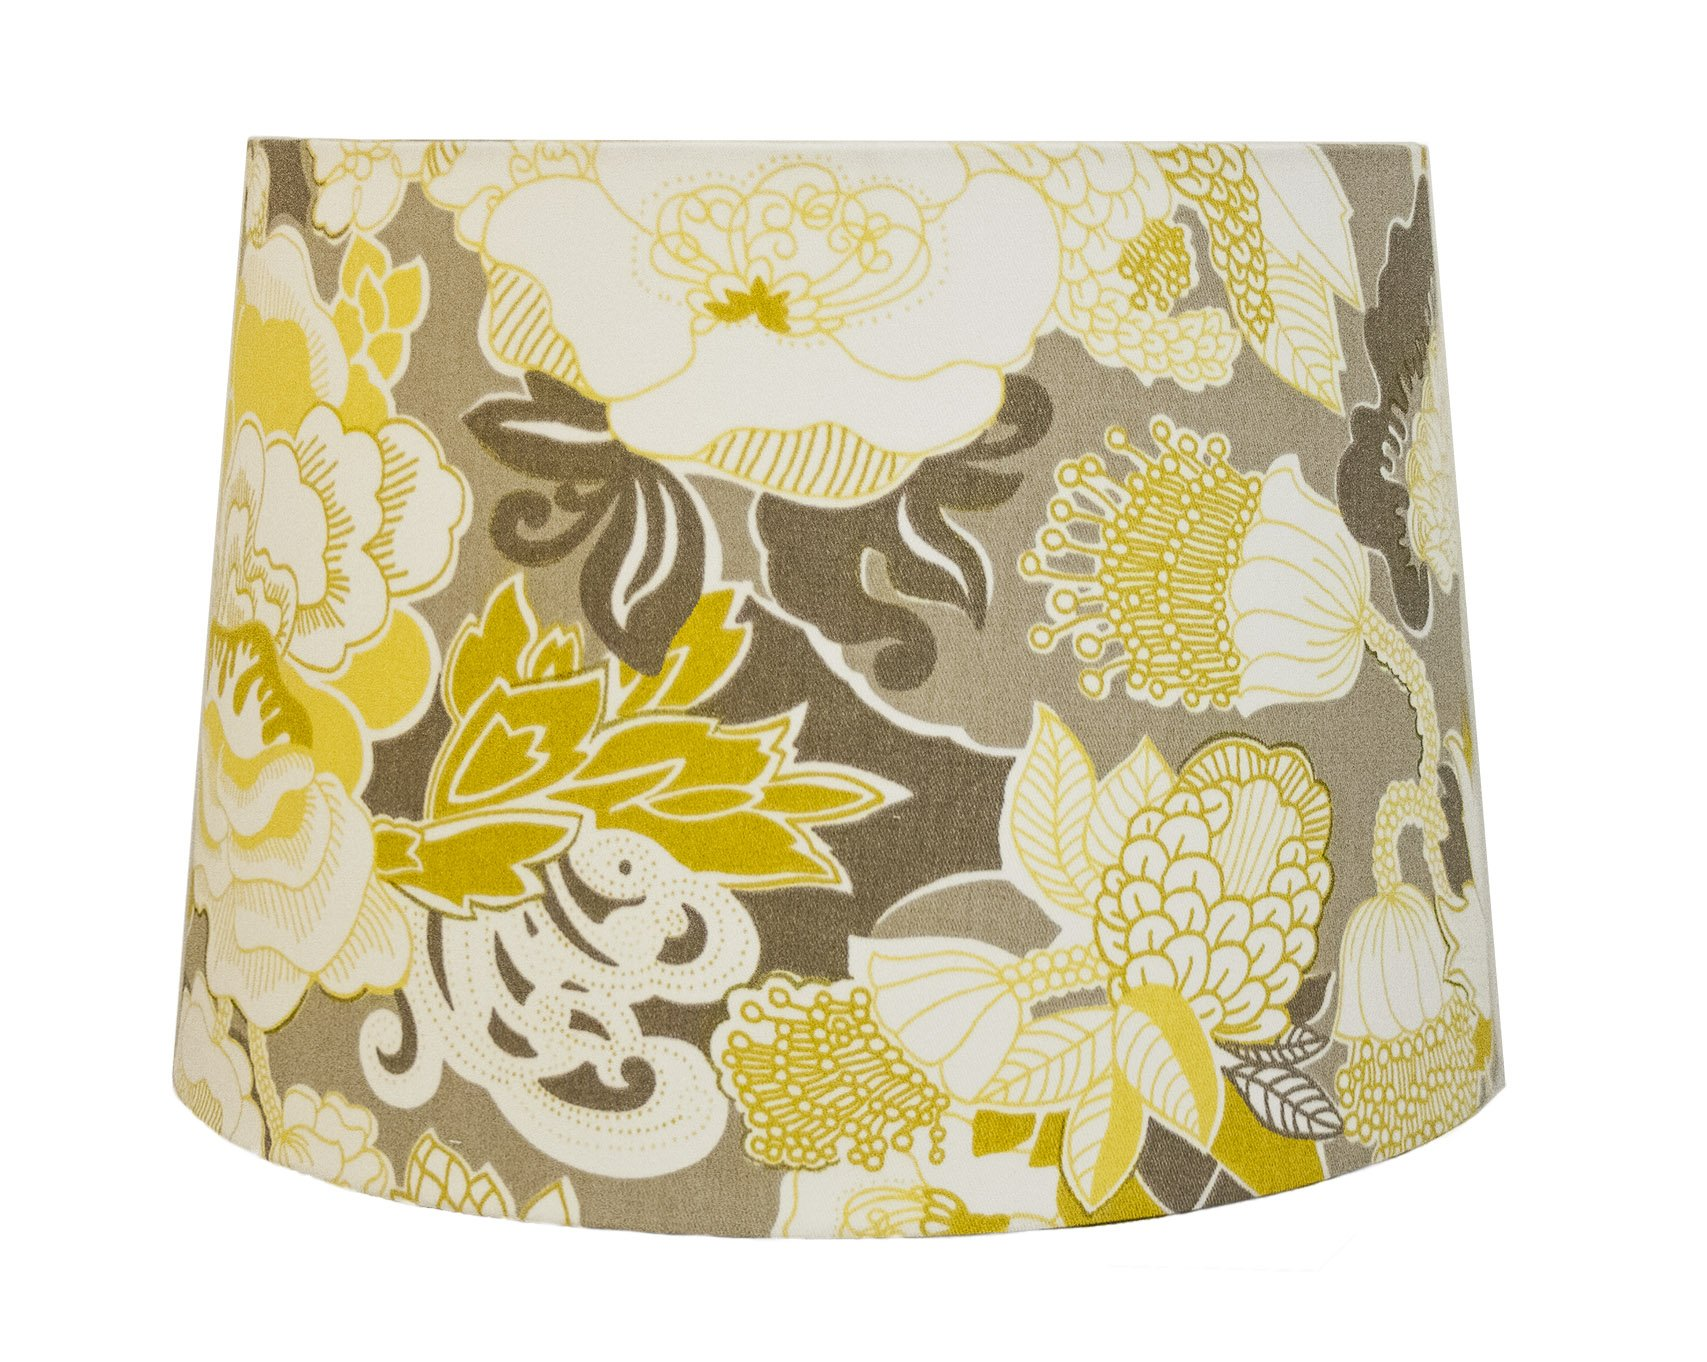 Unique Retro Drum Lamp Shade, Best for 8'' Harp, Floral Print in Yellow, Grey, White, 12x14x9.5'' by Heem & Co